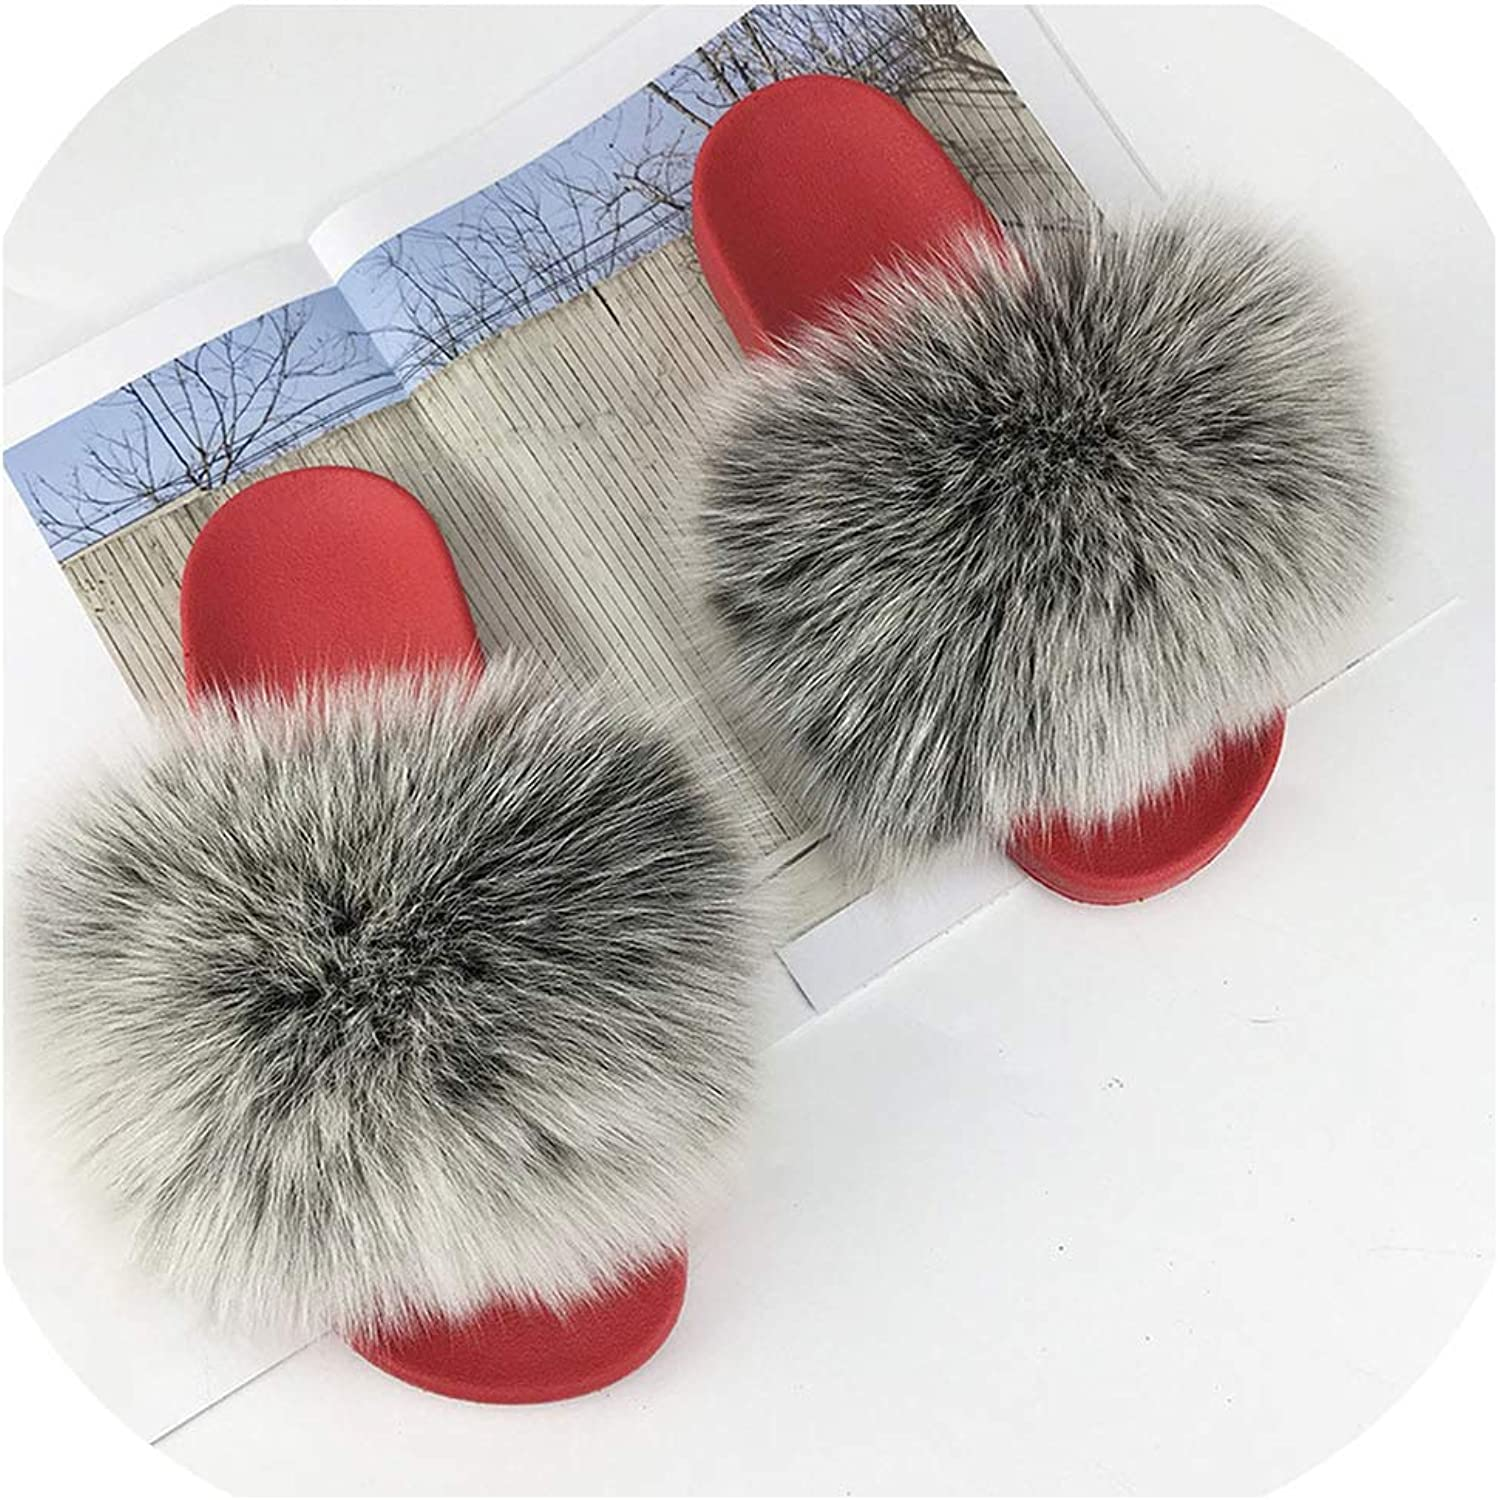 Real Red Slippers Women Slides Hair Flat Fluffy Home Big Size Natural Furry Flip F,